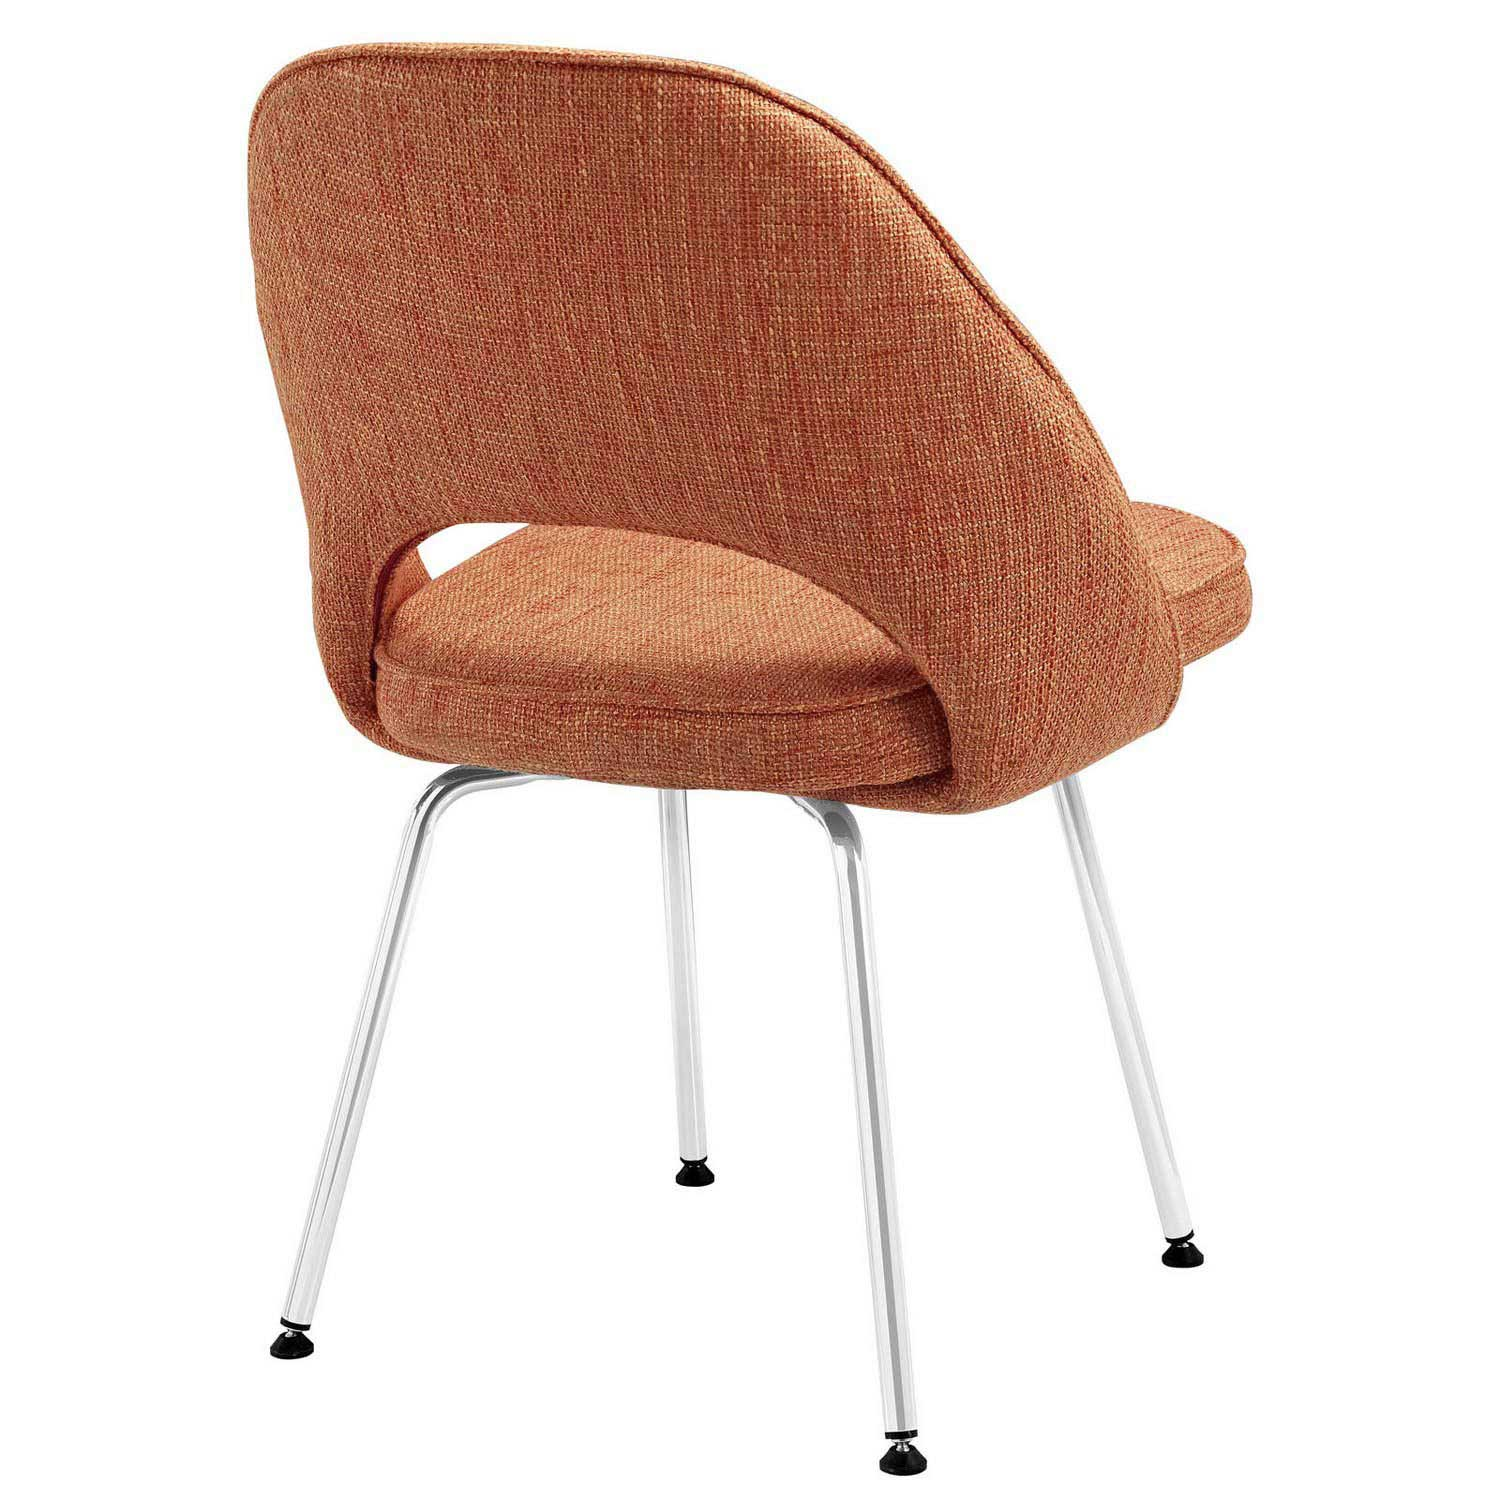 Modway Cordelia Dining Fabric Side Chair - Orange